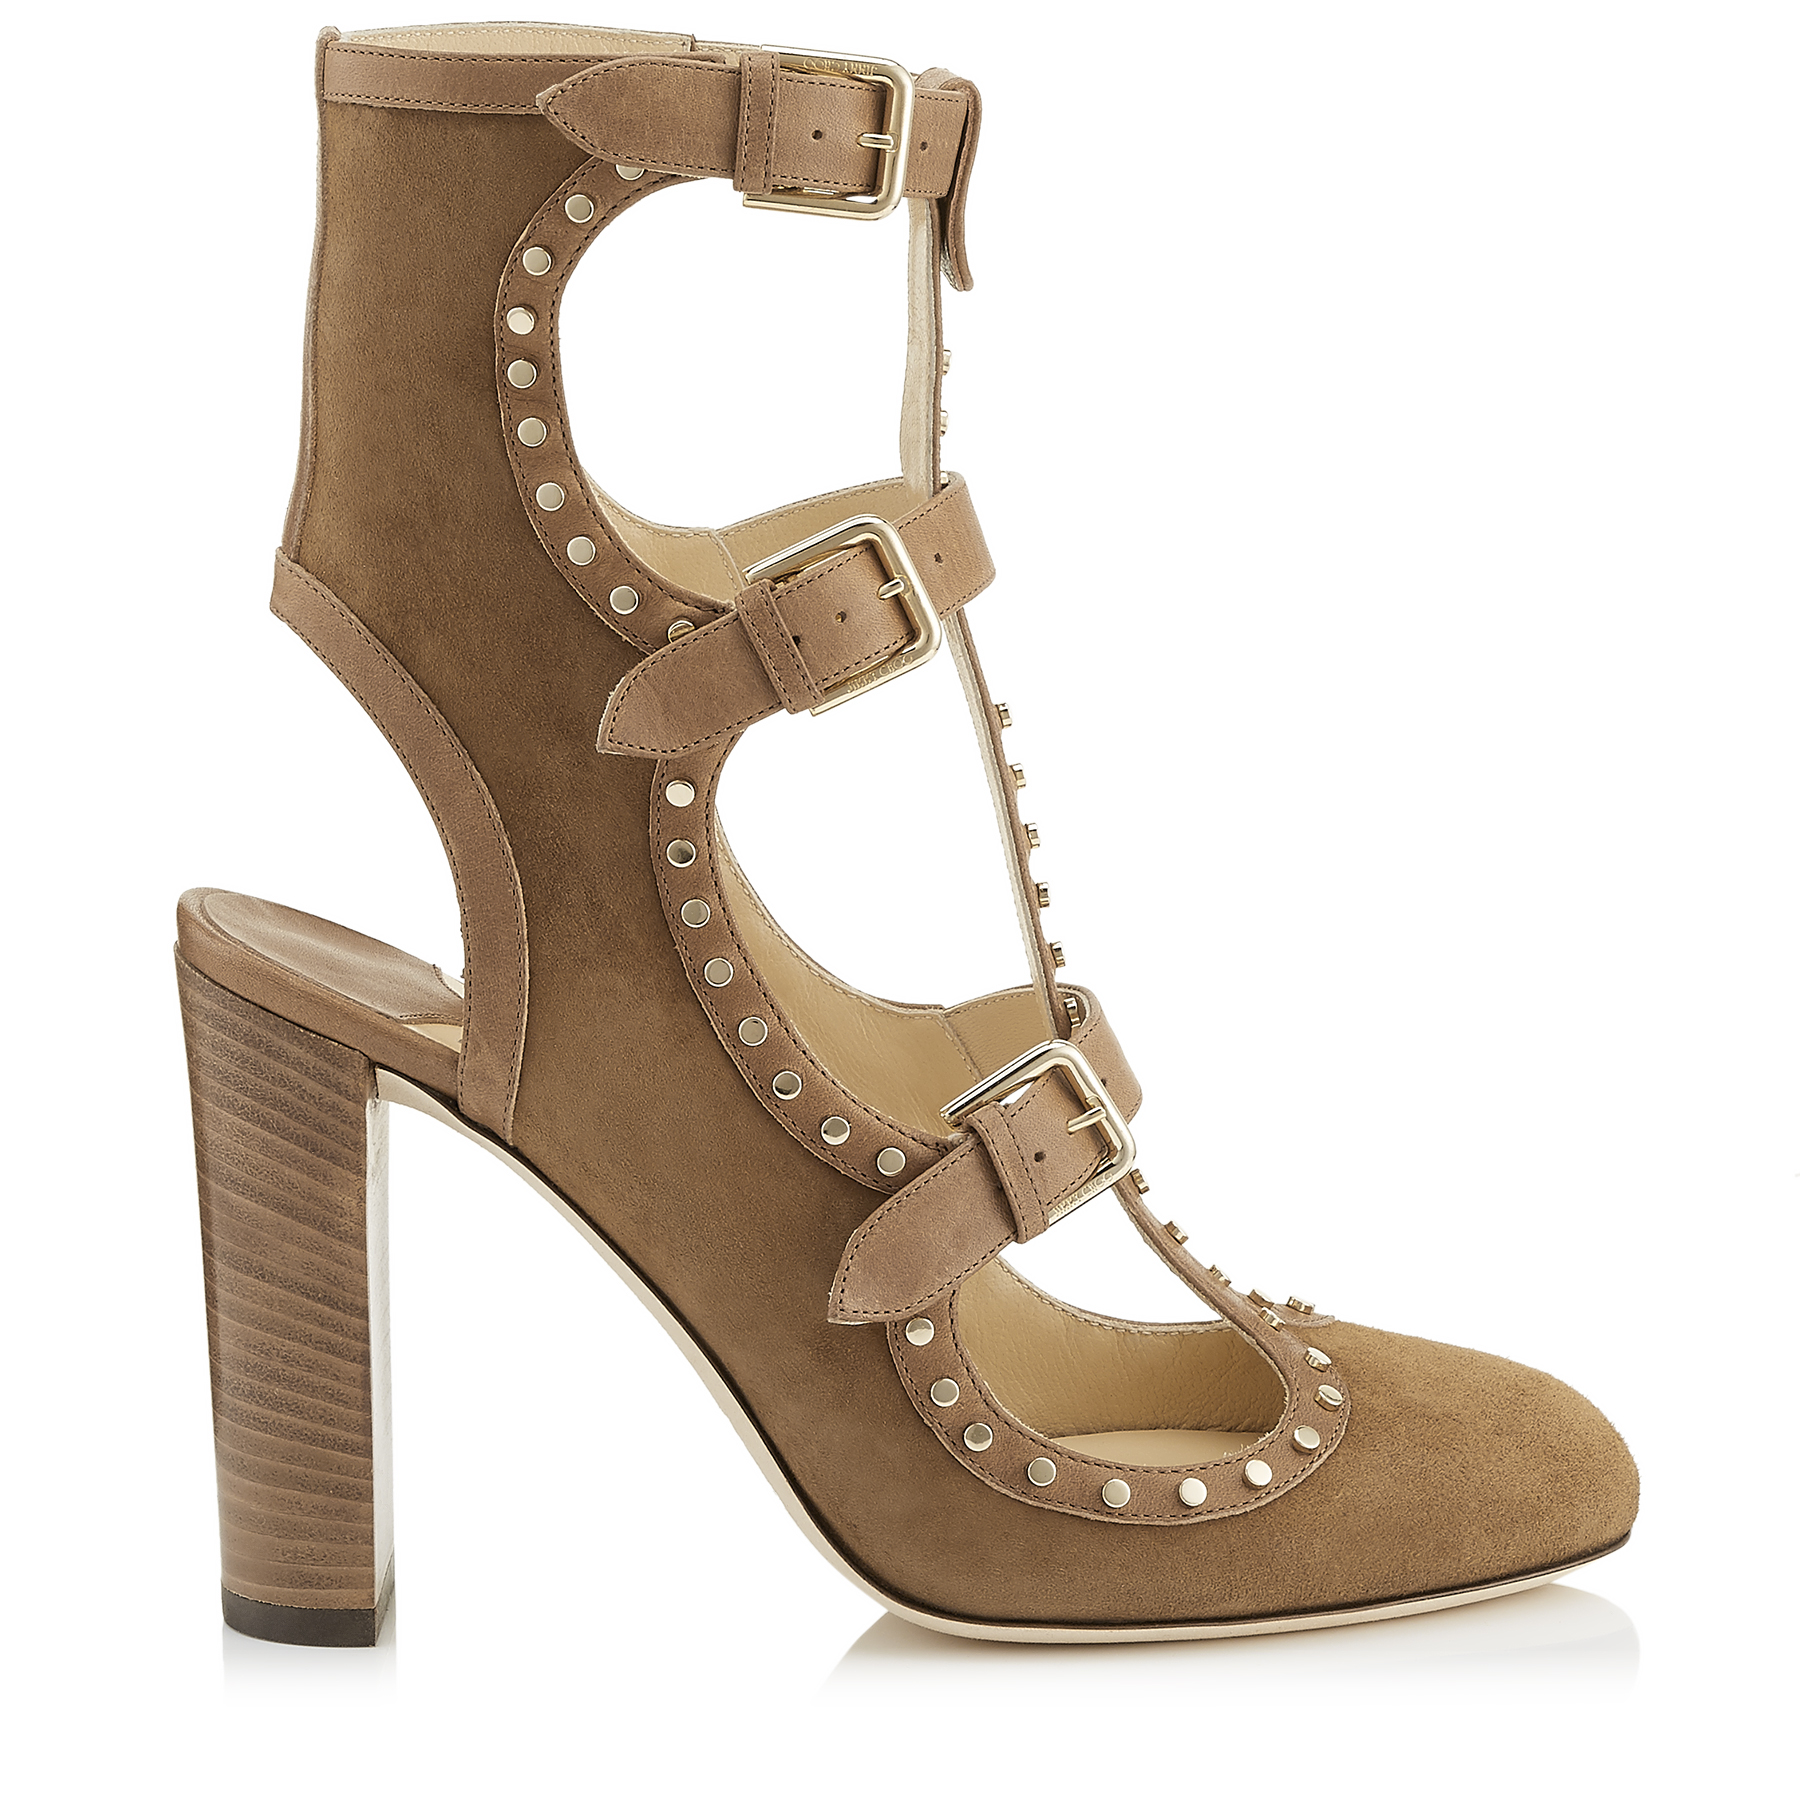 HENSLEY 100 Hazel Suede and Vachetta leather Booties with Studs